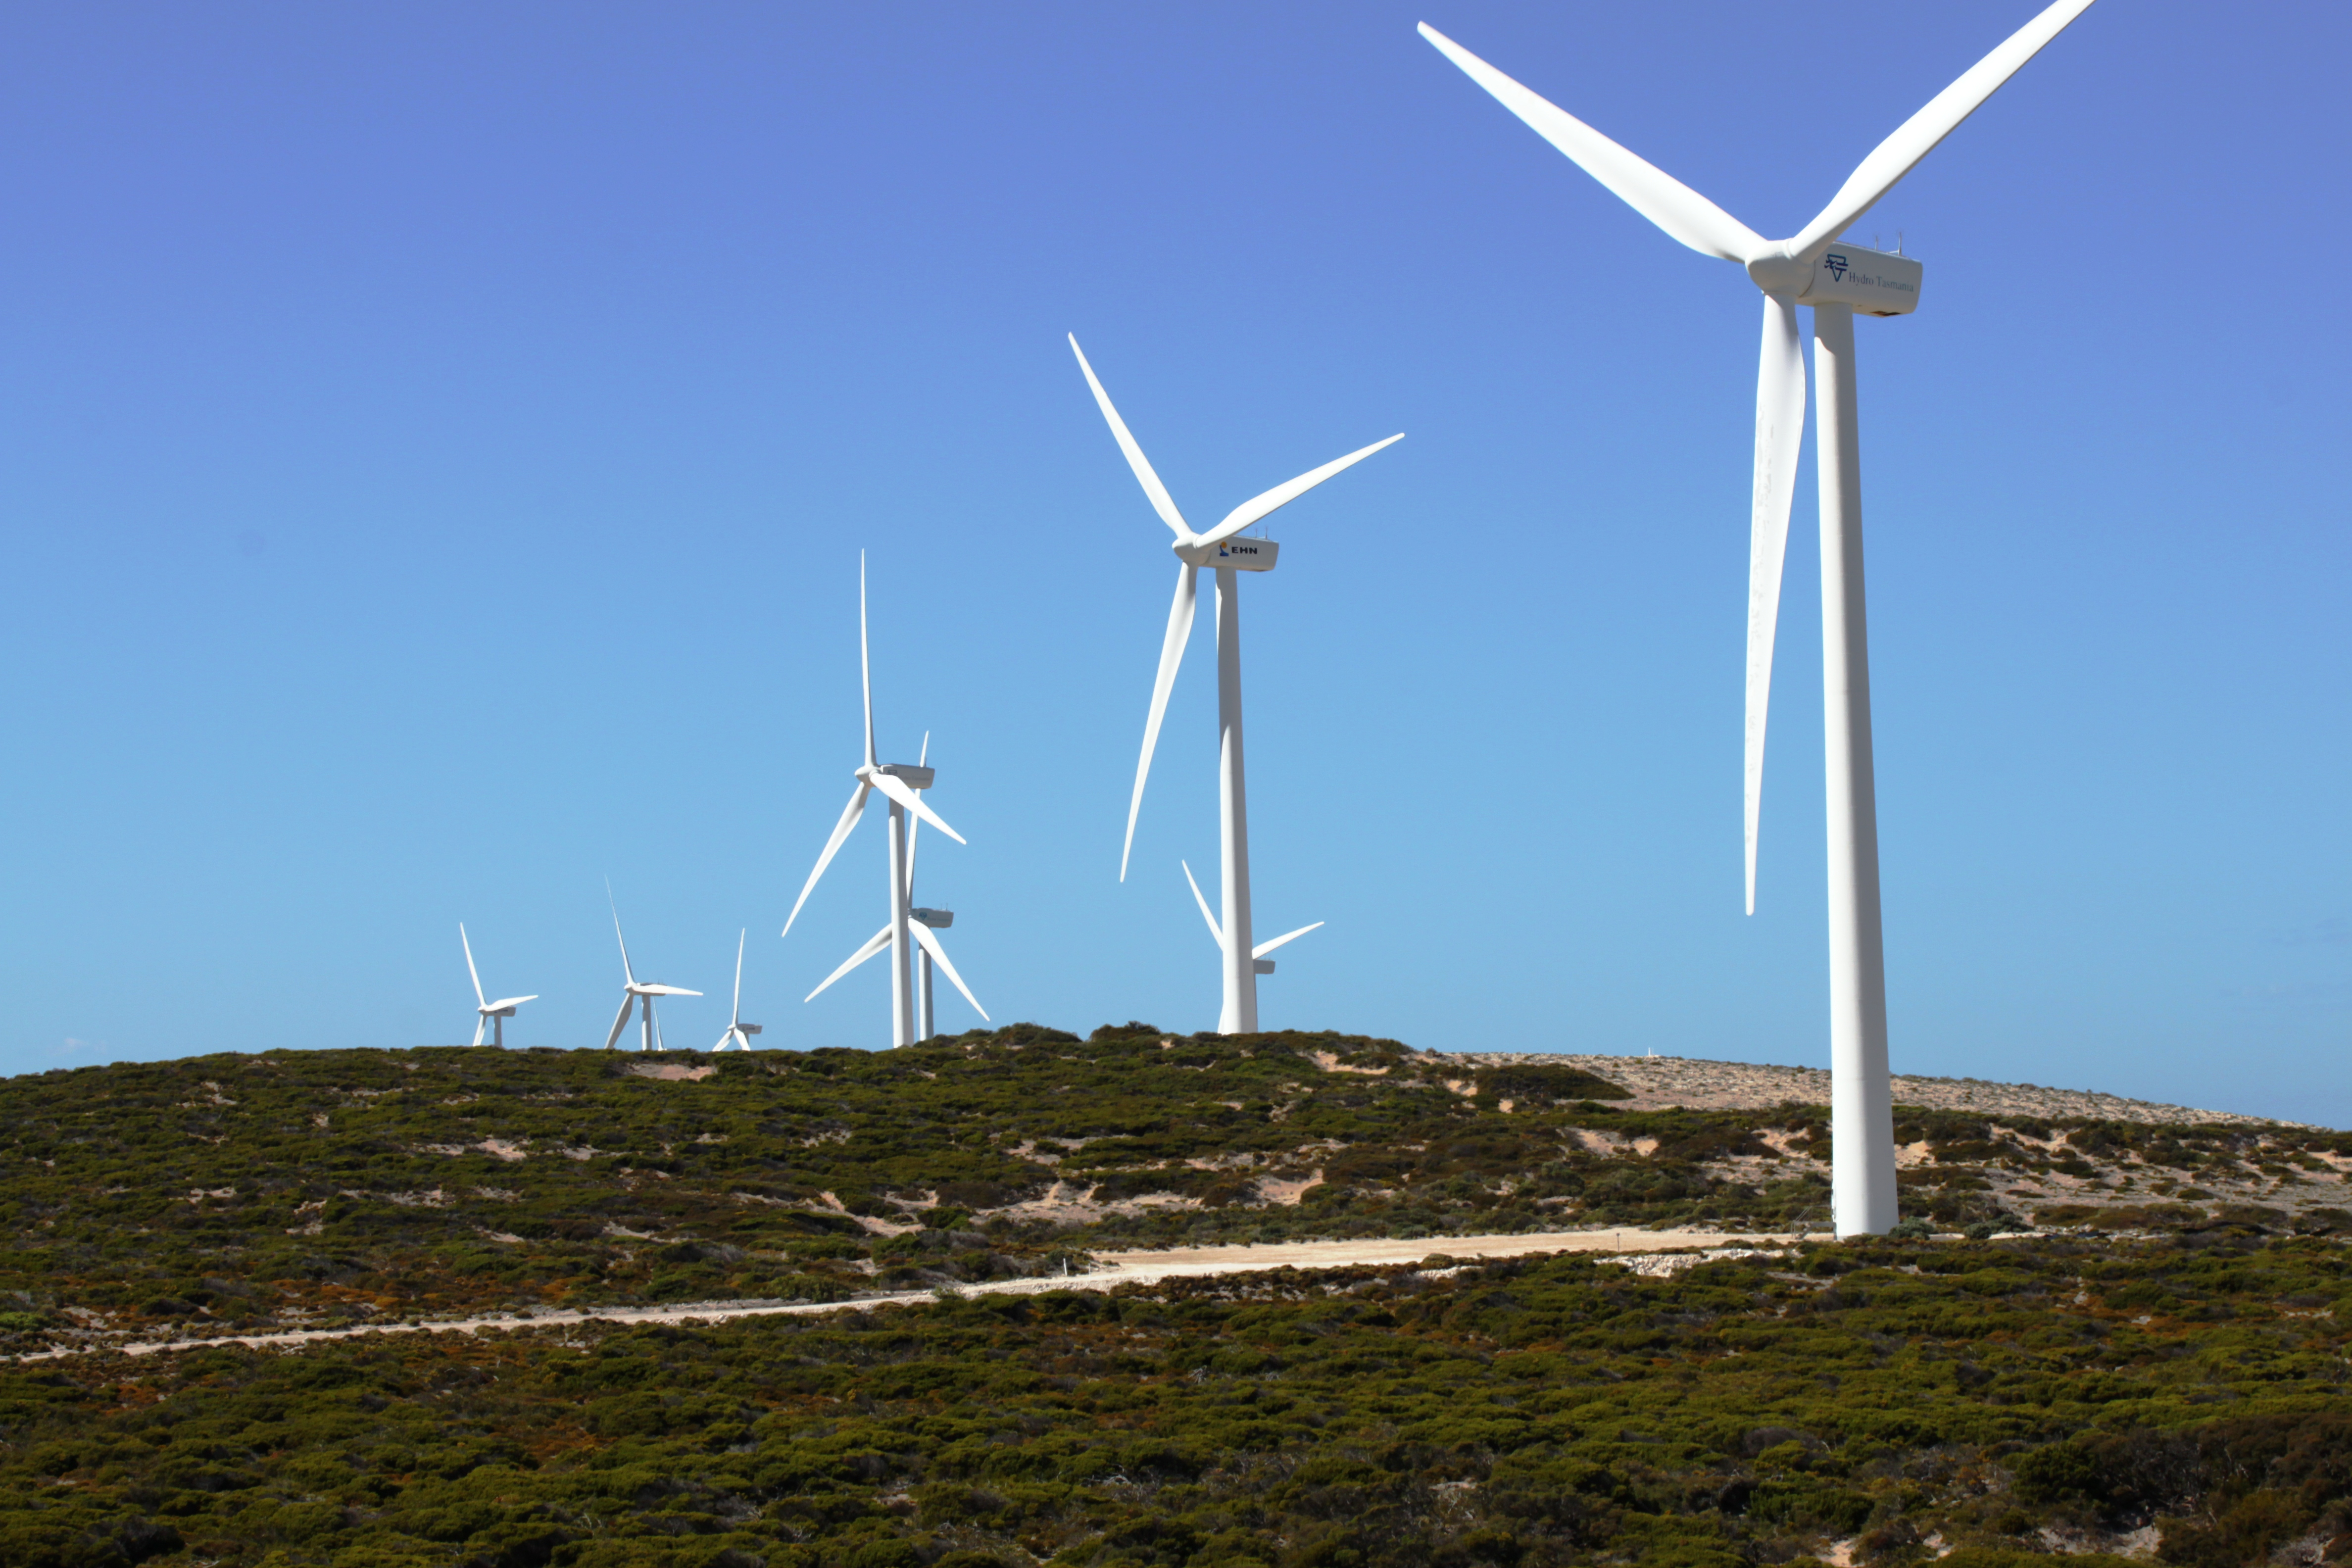 Inspection and repair of composites products, such as wind turbines.